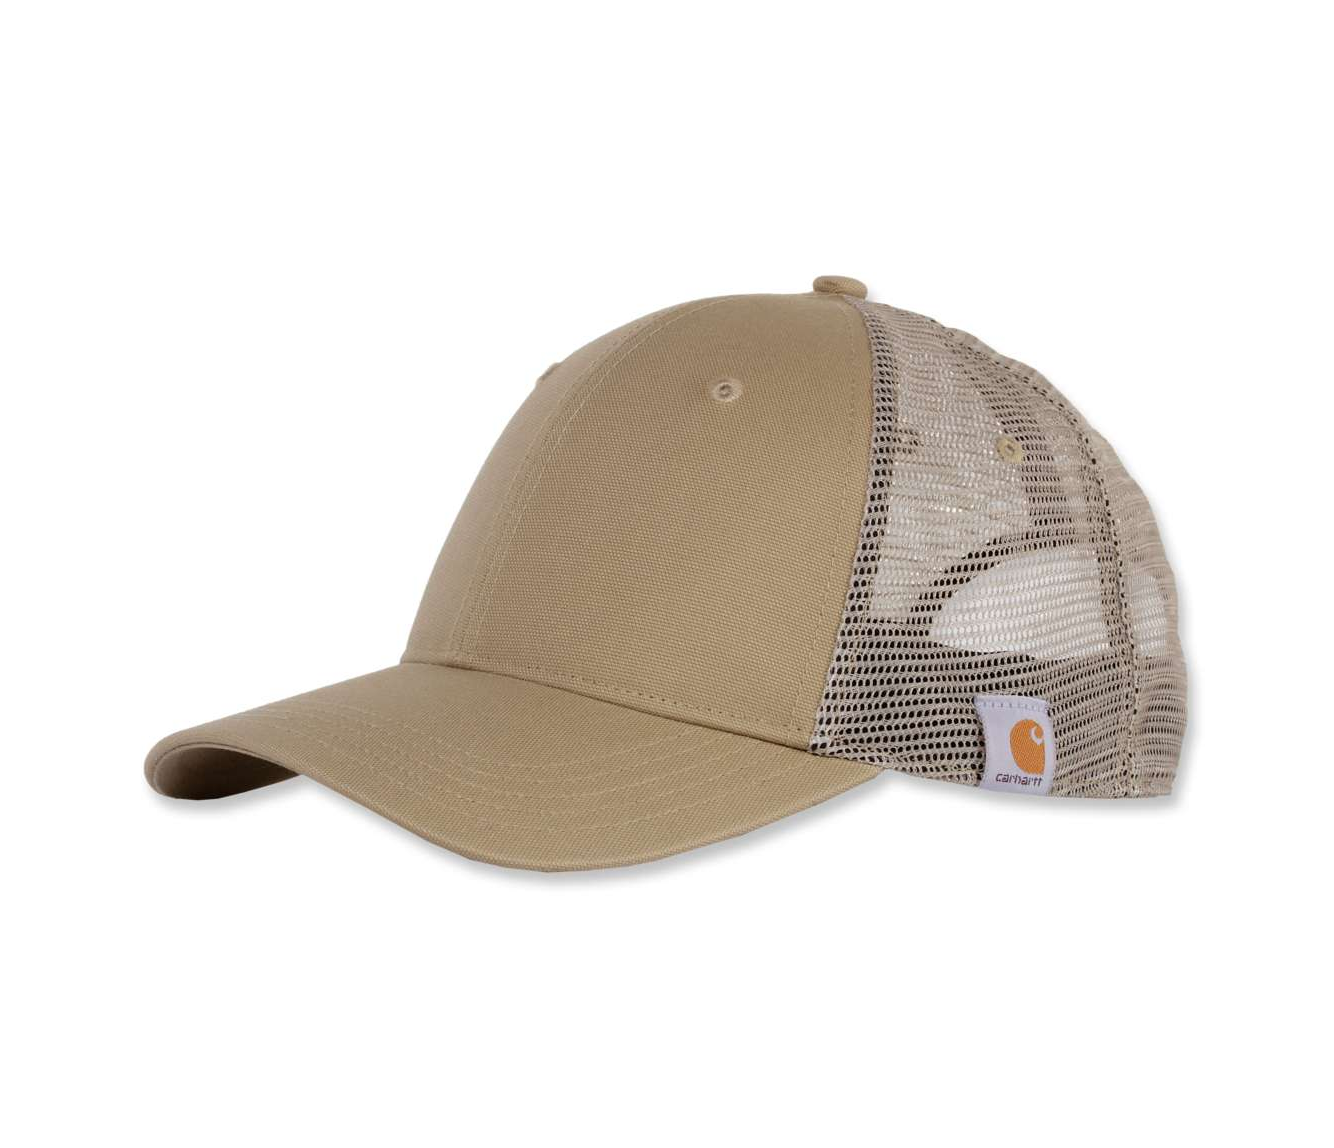 Angled front view of rugged Professional Series Cap in khaki with pre-curved visor and canvas front with mesh back, and Carhartt label visible on side.